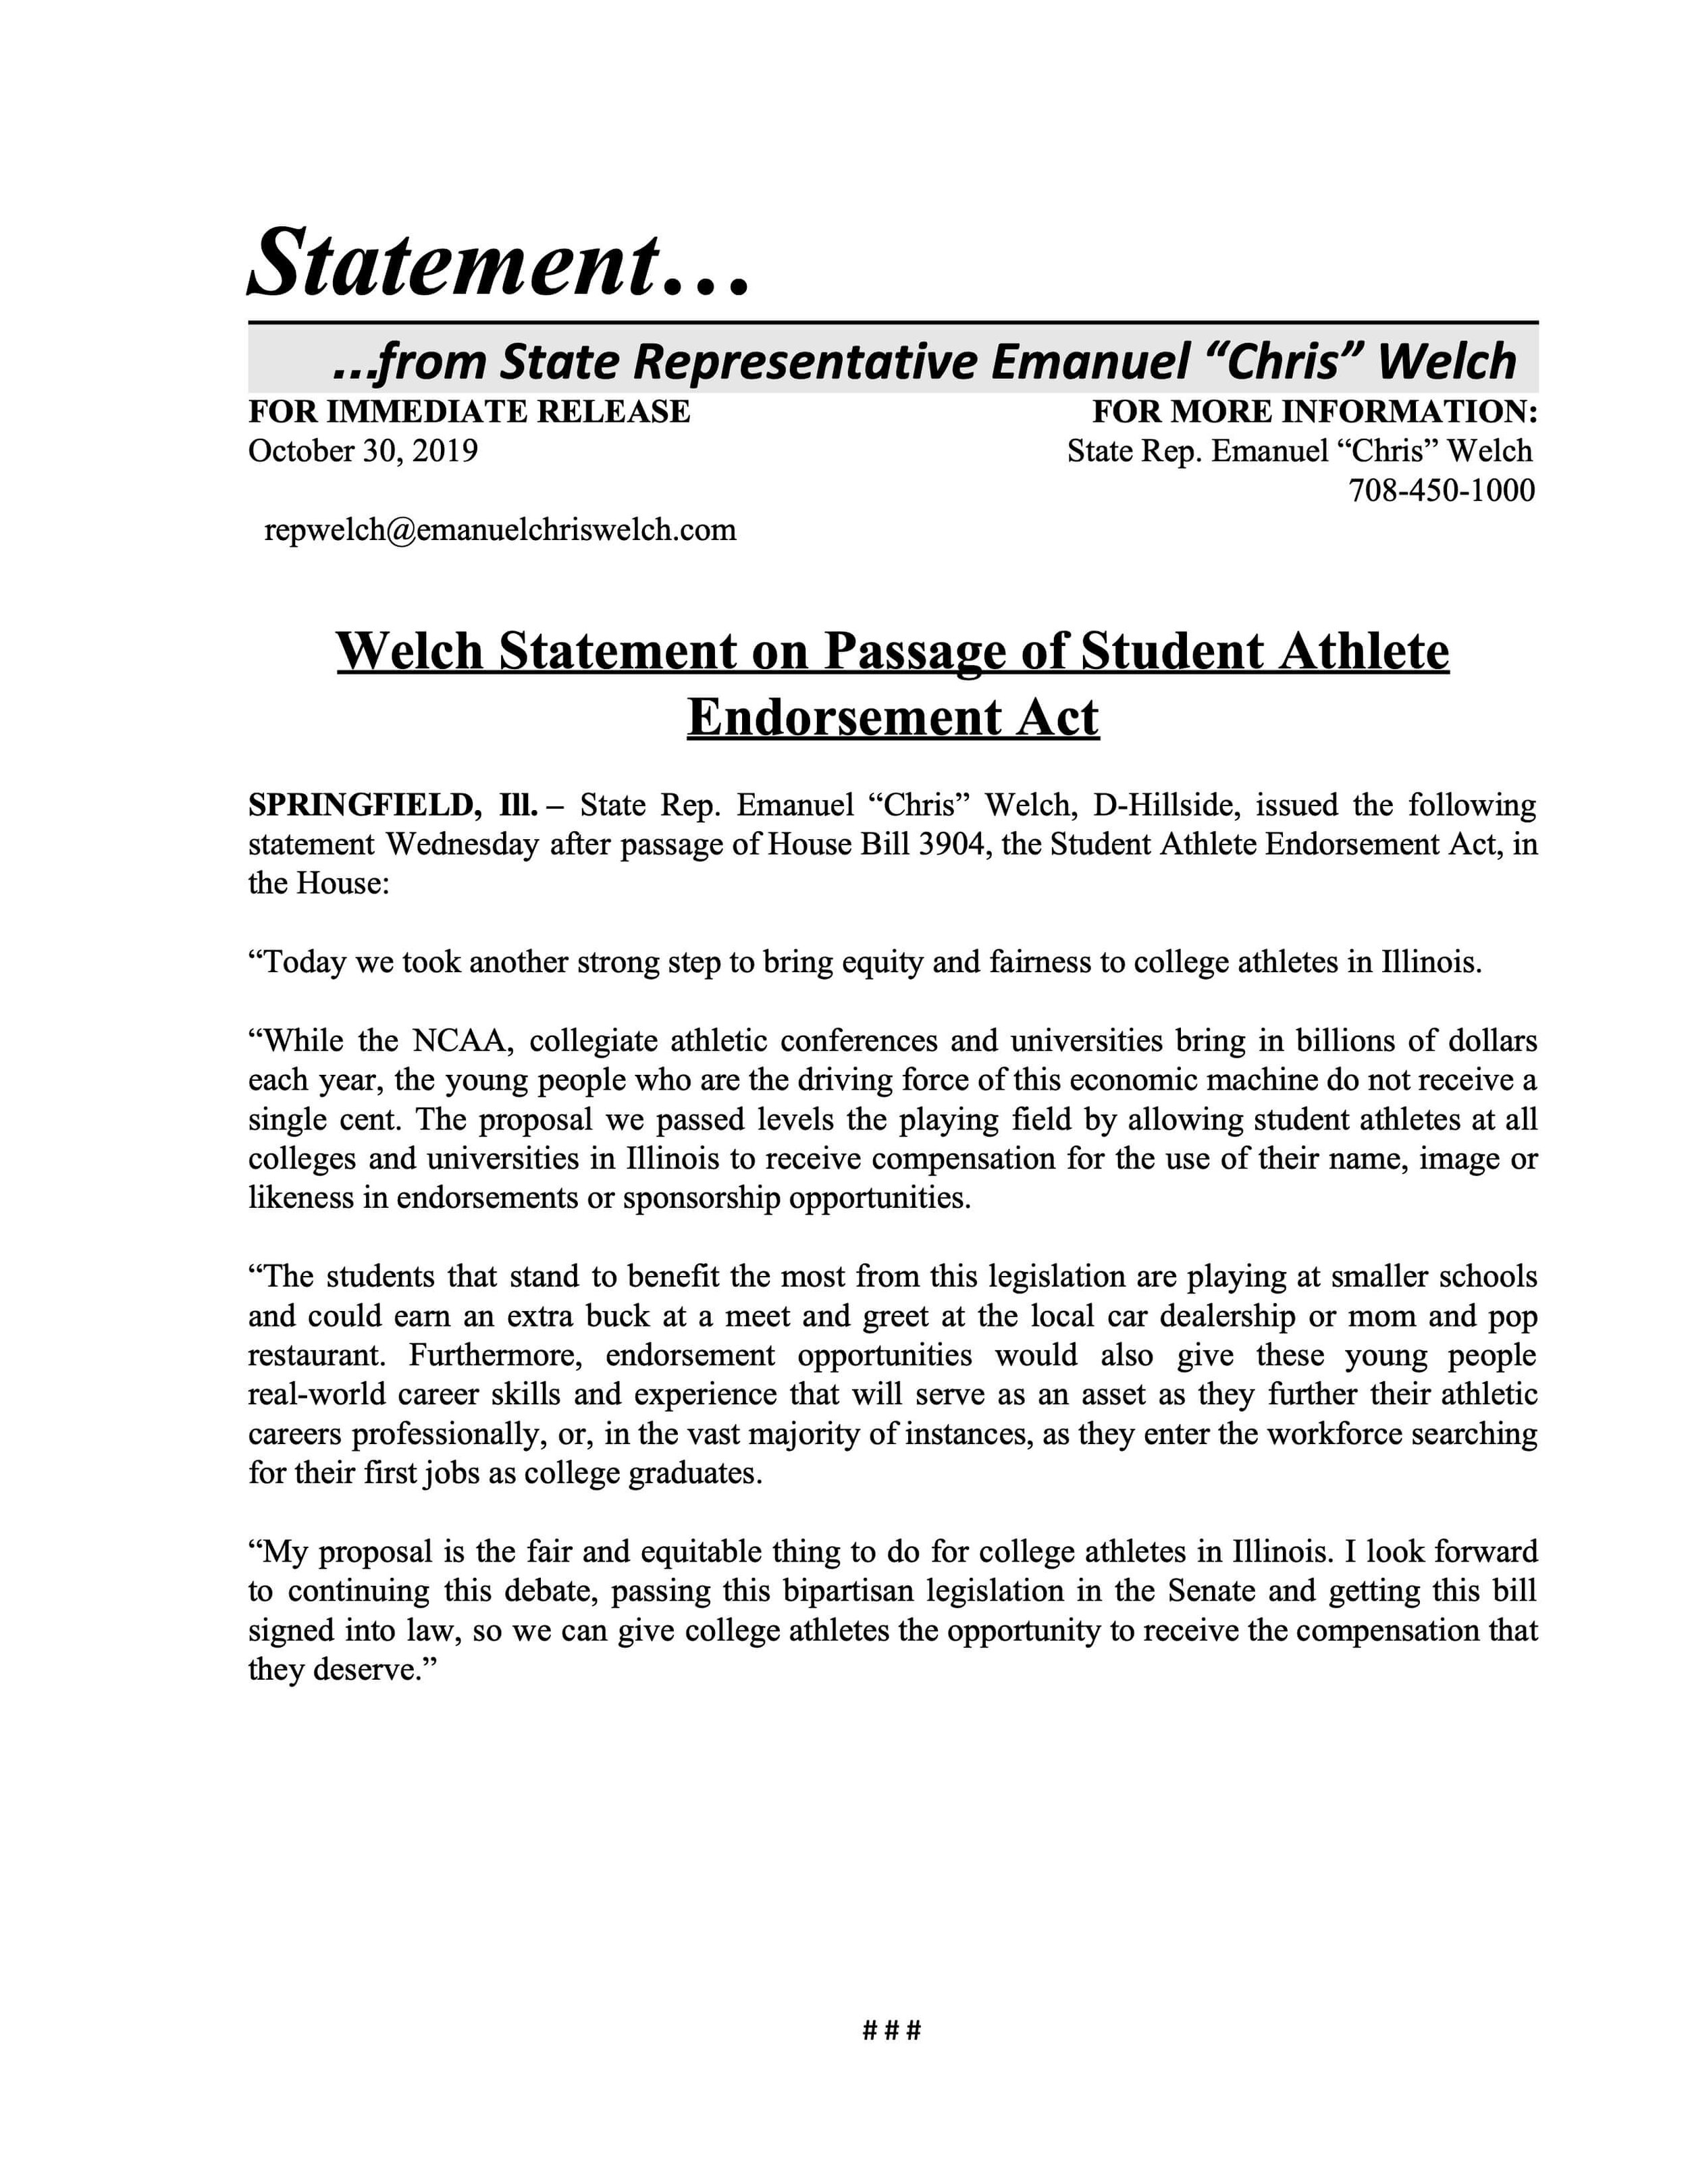 Welch Statement on Passage of Student Athlete Endorsement Act  (October 30, 2019)